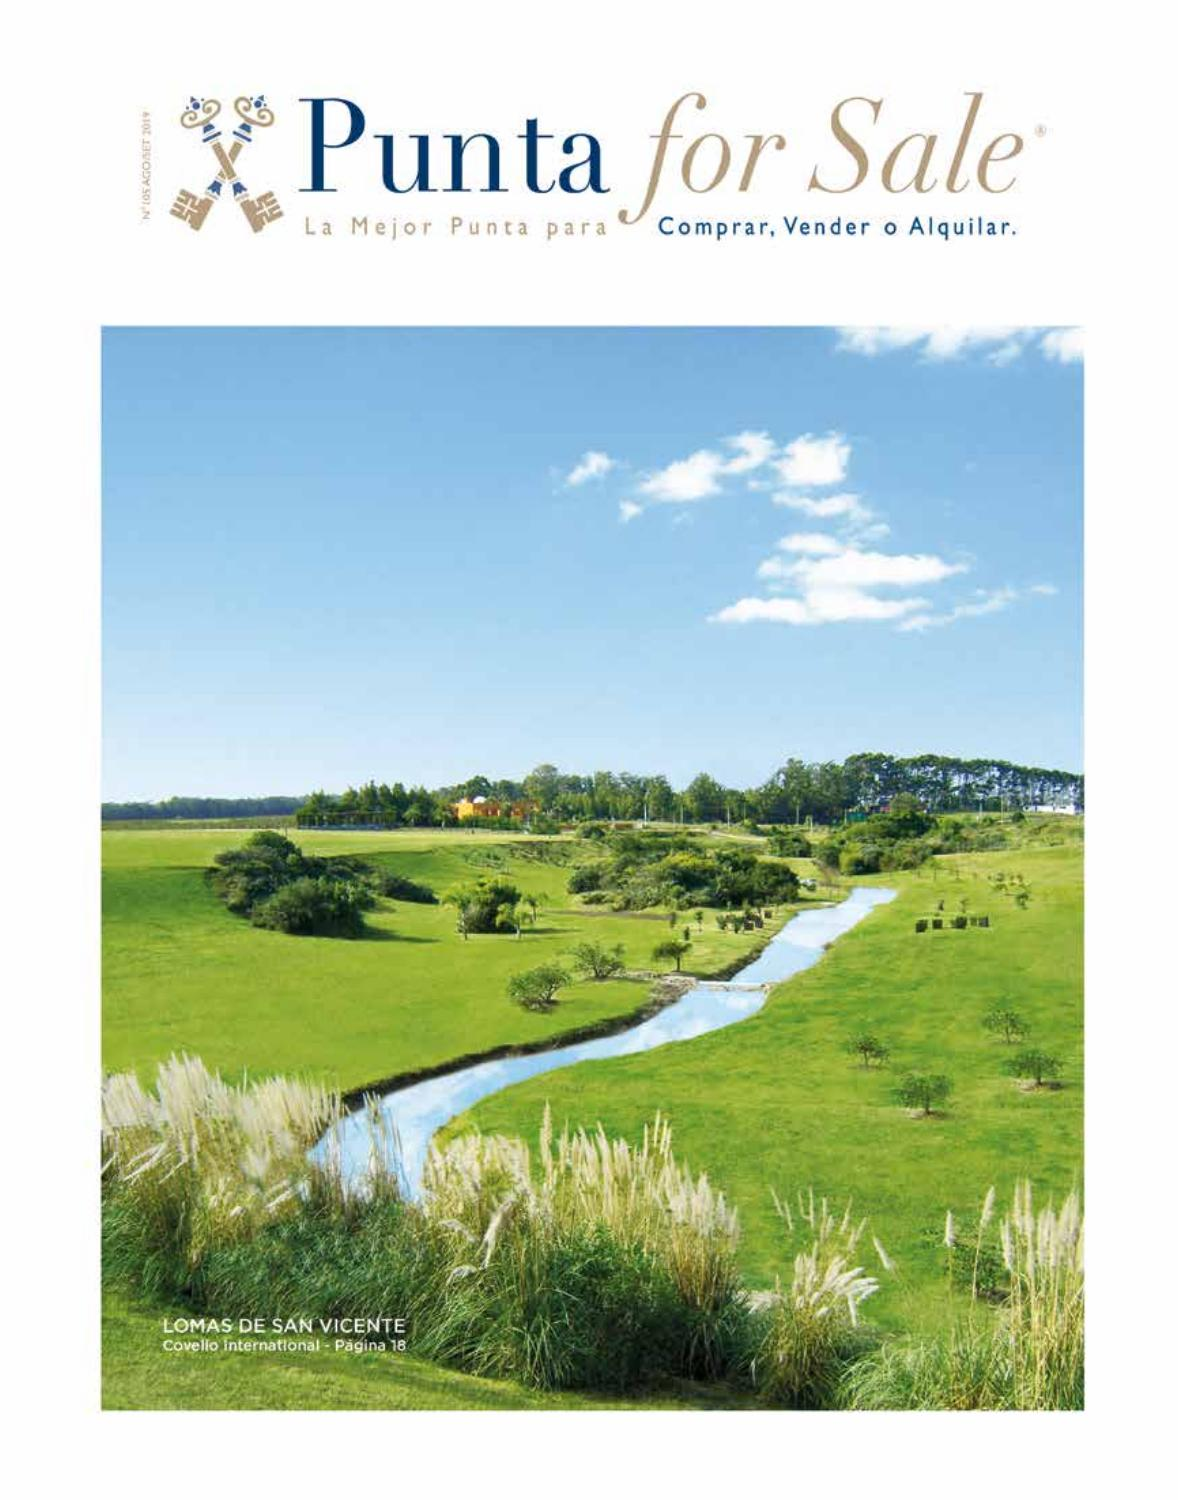 Revista de Real Estate Punta For Sale, edición #105 Agosto - Setiembre 2019